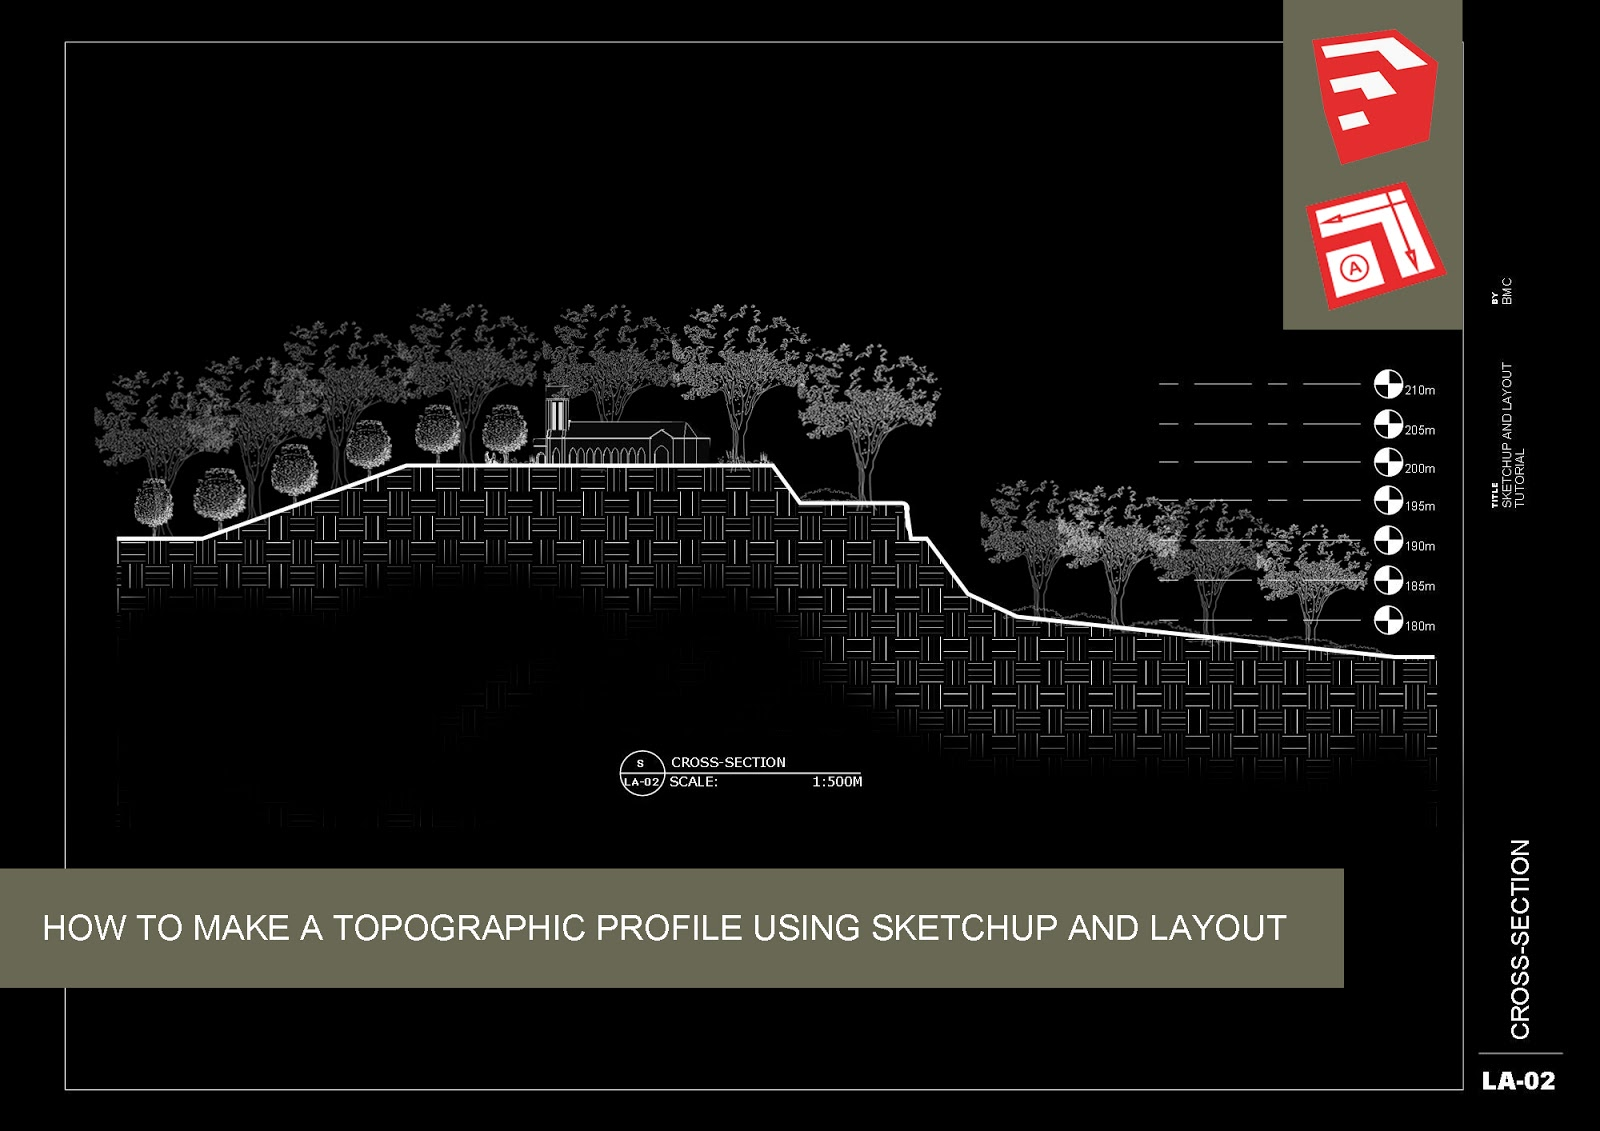 How To Make A Topographic Profile Using Sketchup And Layout